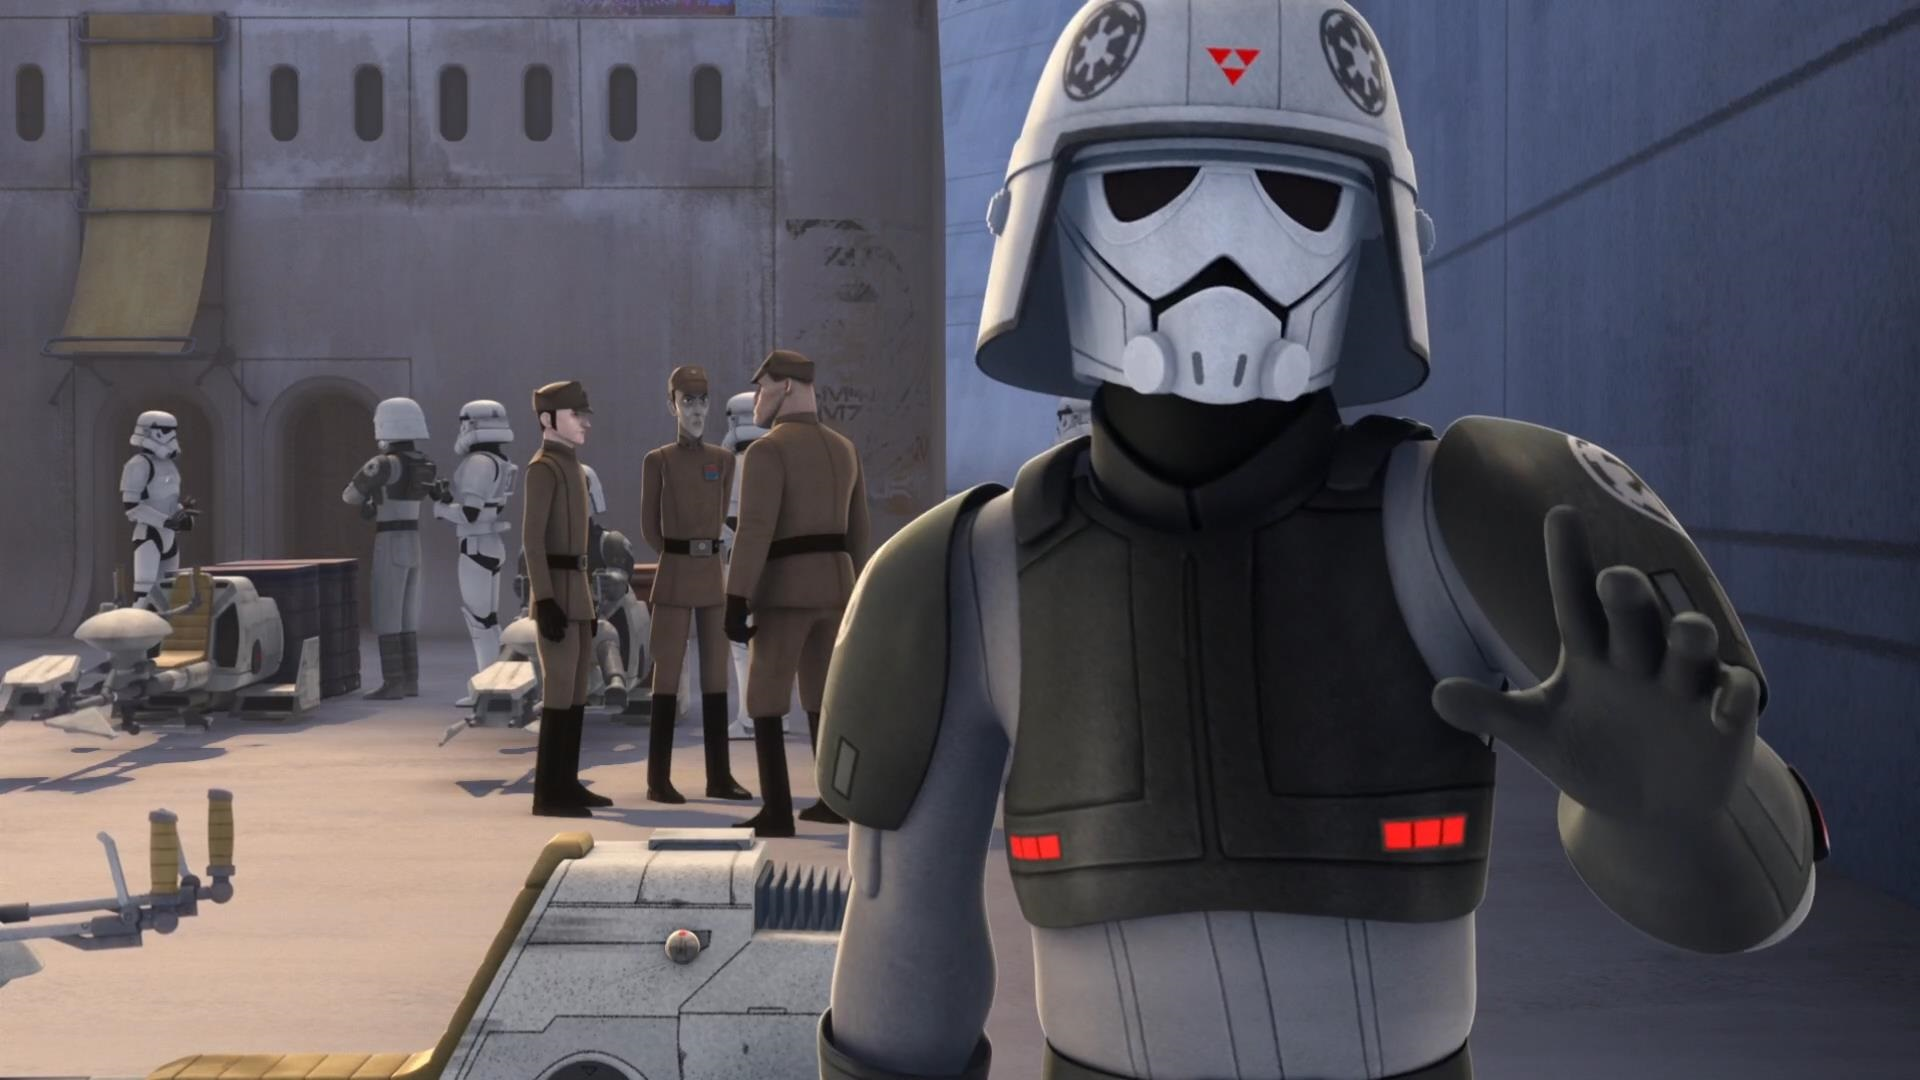 ARGENTeaM Star Wars Rebels 2014 S01E01 Spark Of Rebellion